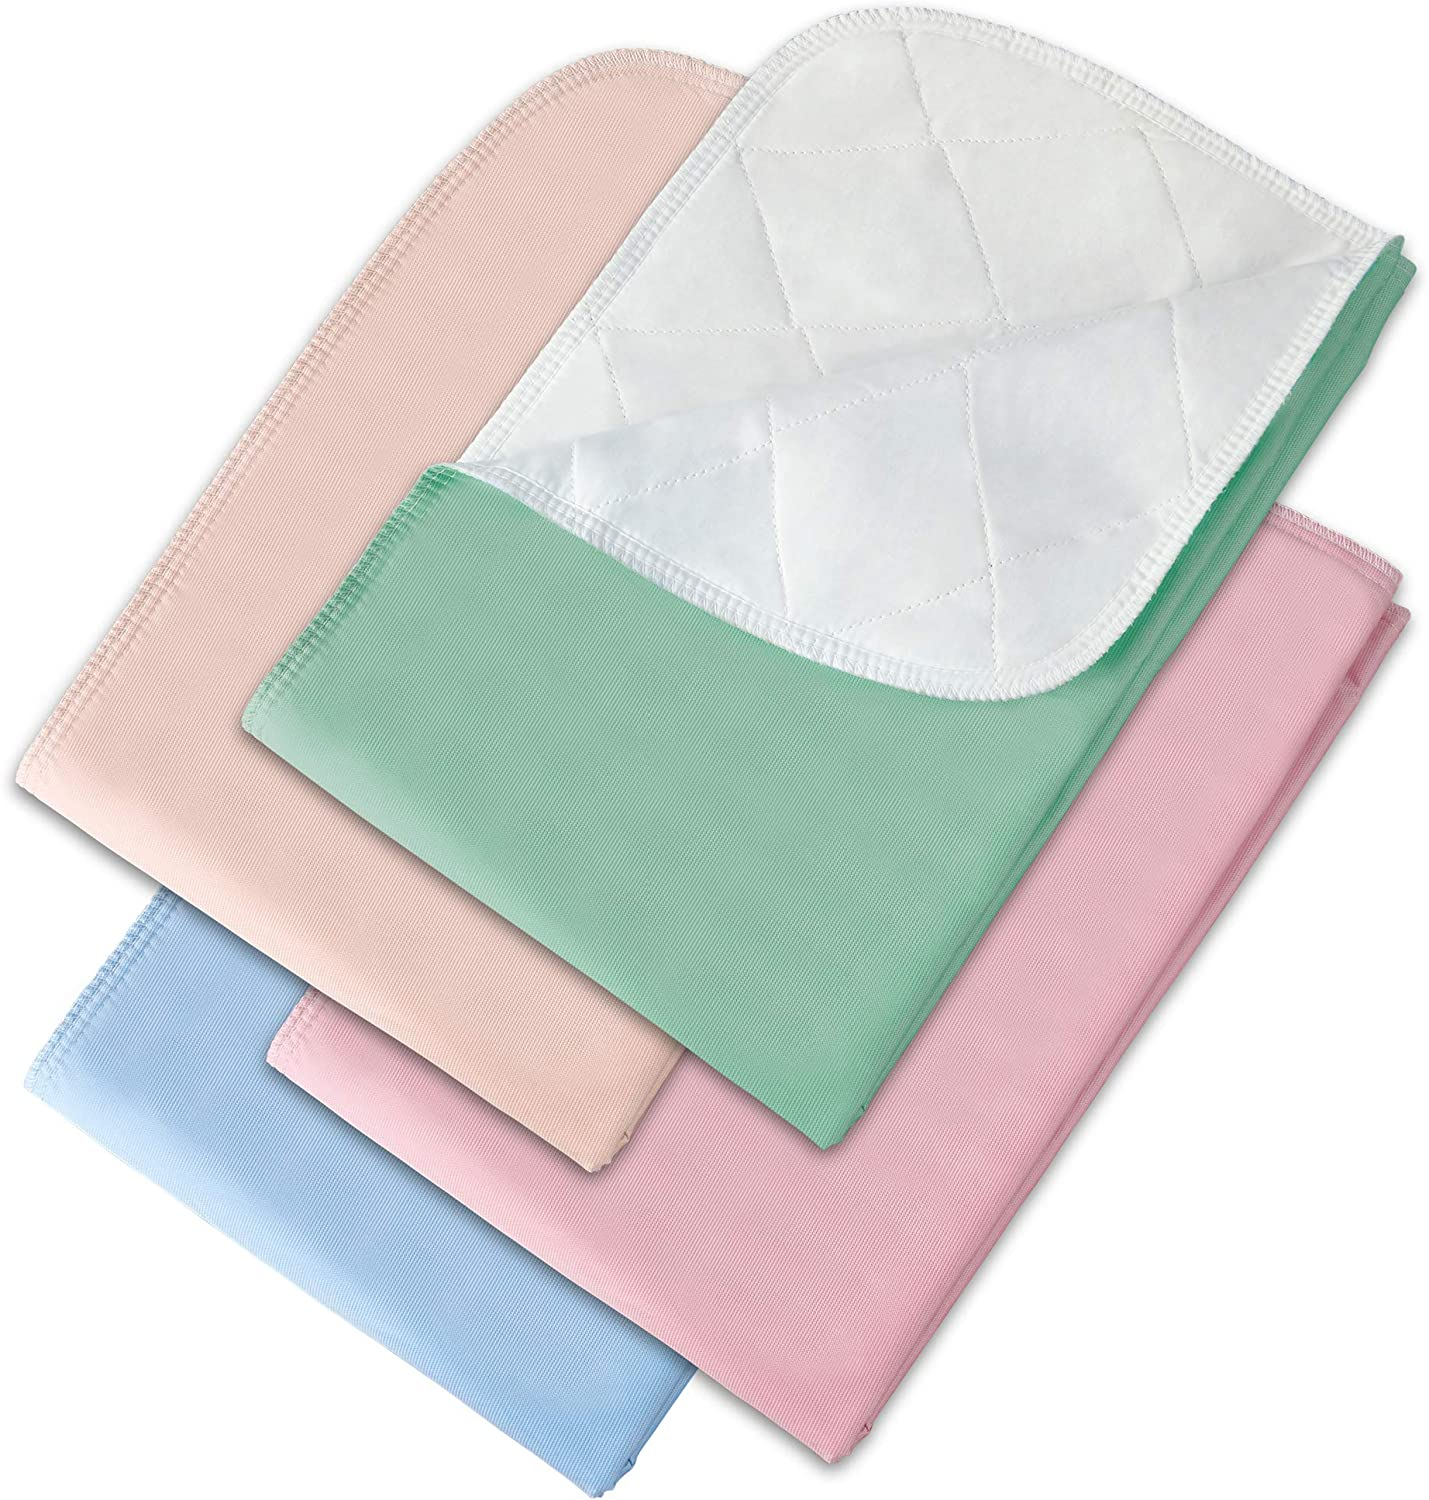 "Incontinence Bed Pads - 4 Pack 24"" x 36"" Reusable Waterproof Mattress Protectors - Highly Absorbent, Machine Washable - for Children, Pets and Seniors - Assorted Colors - Made in USA - Royal Care"